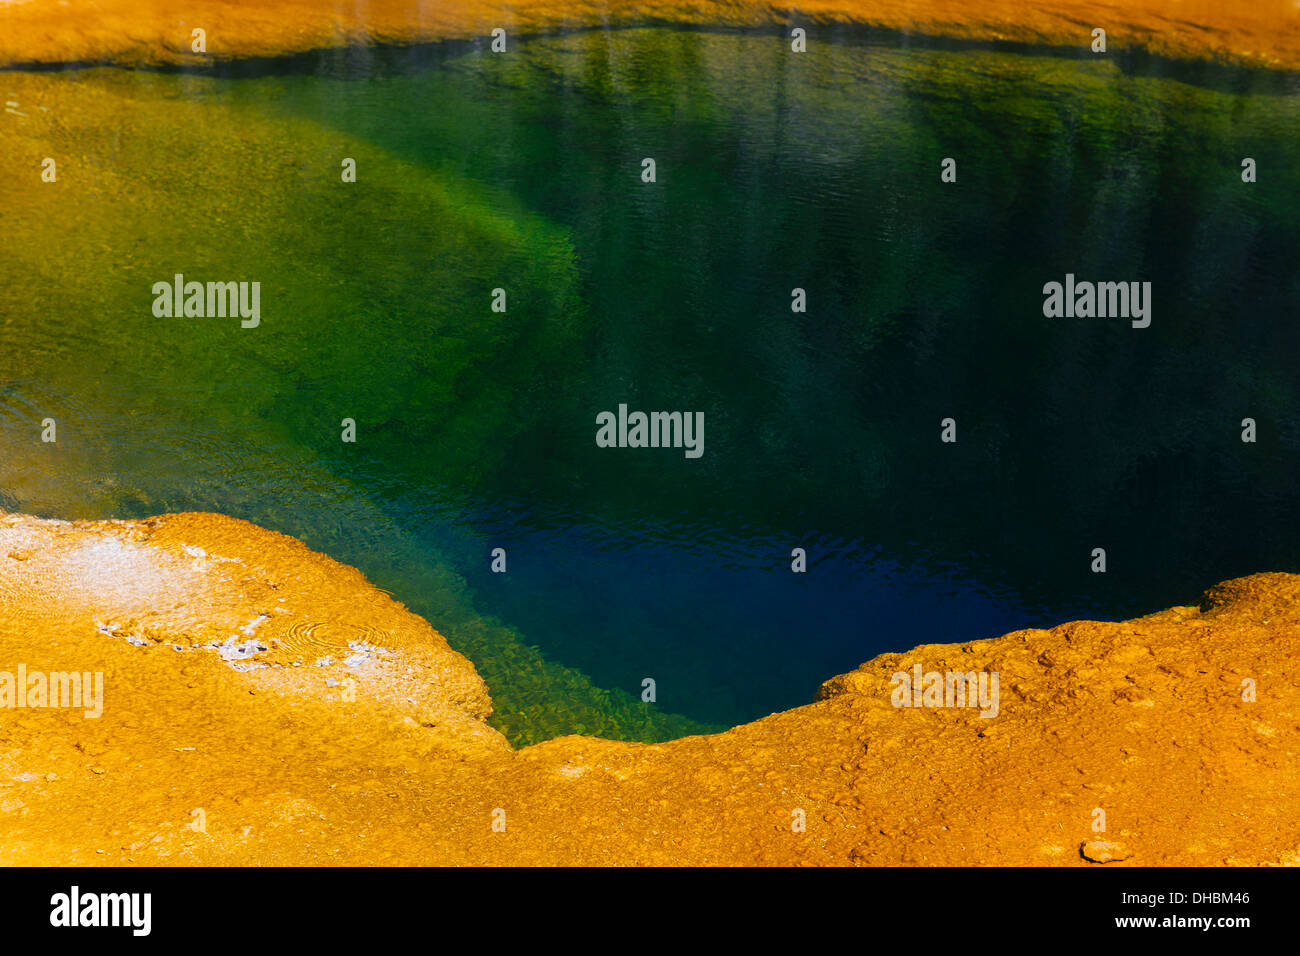 Detail of colourful water mineral deposits and rock formations from Midway Geyser, in Yellowstone National Park. - Stock Image